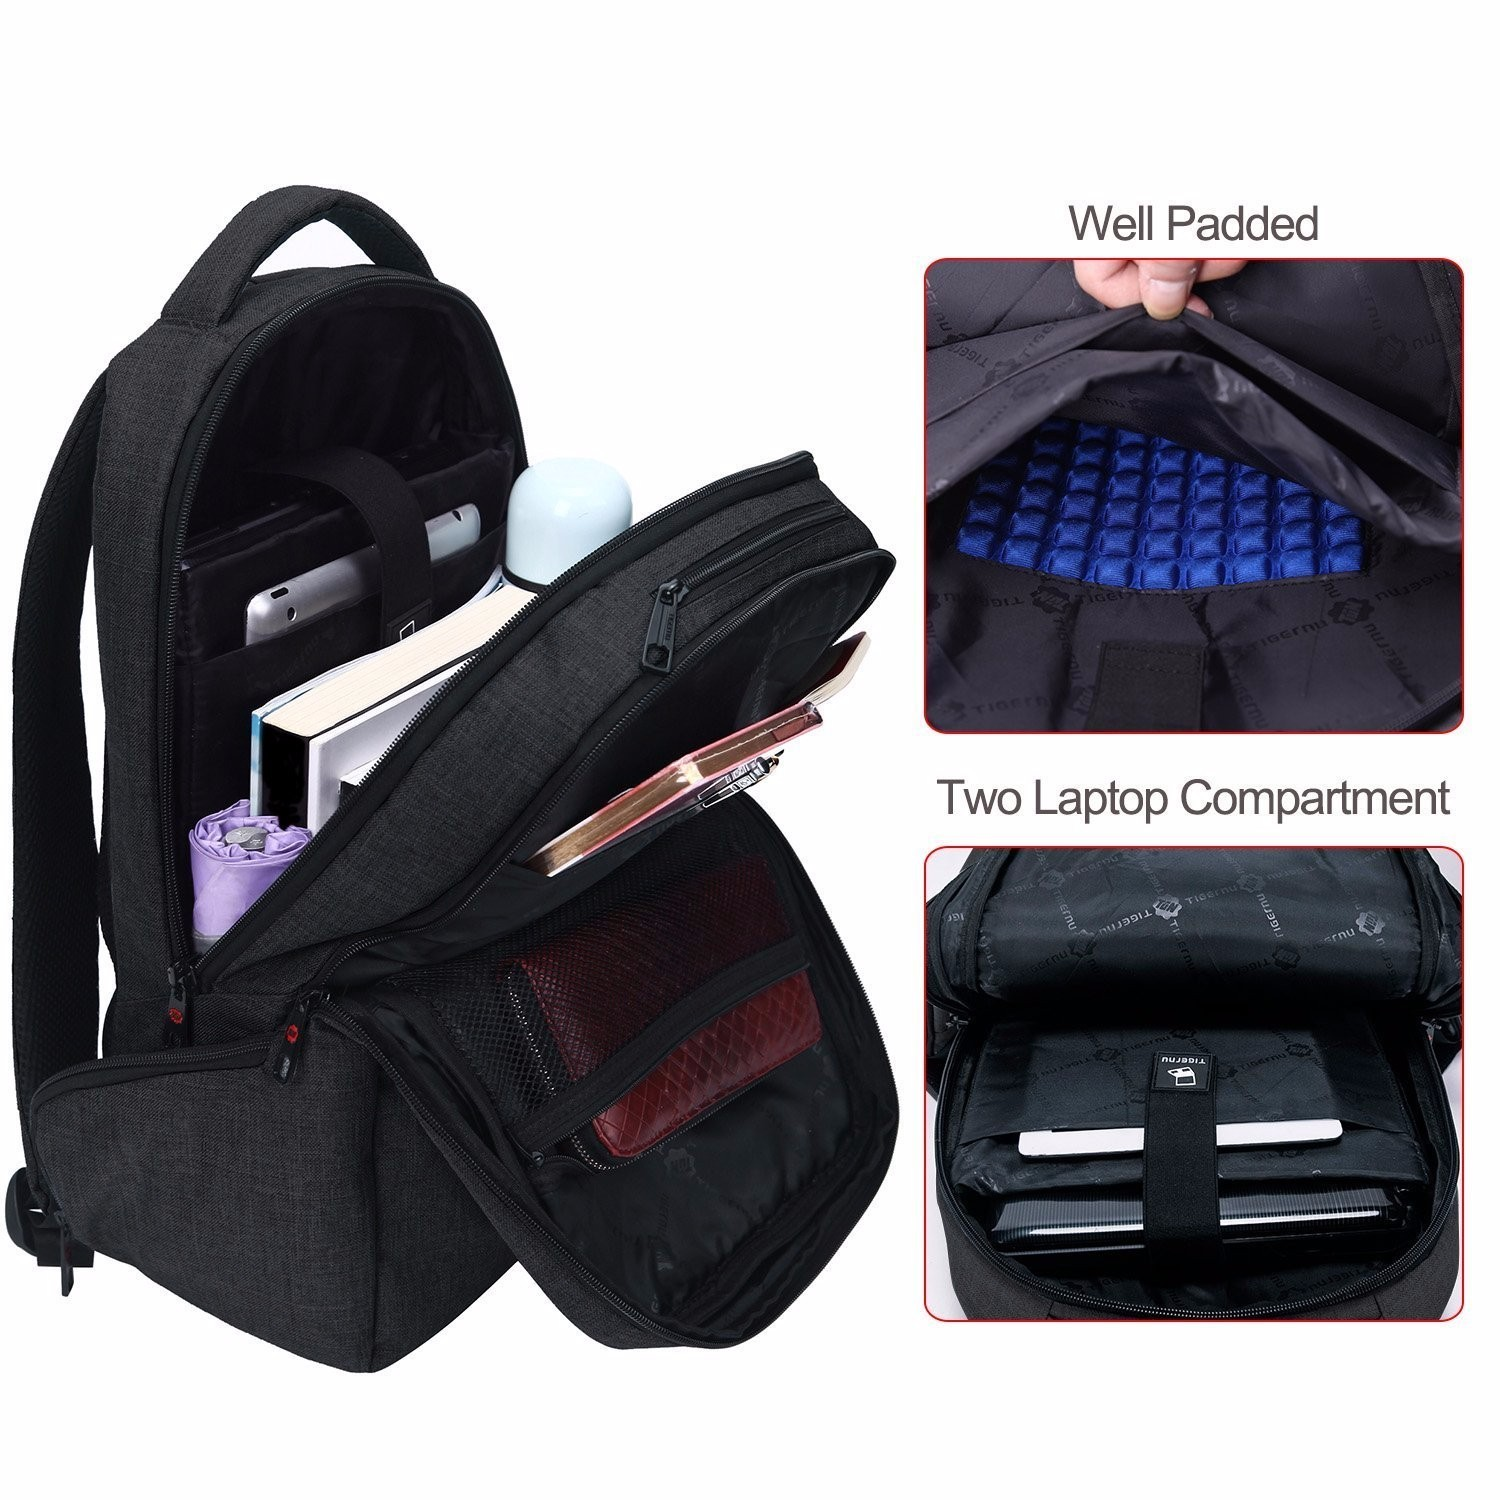 Wholesale Rucksack Laptop Bag Manufacturers, Wholesale Rucksack Laptop Bag Factory, Supply Wholesale Rucksack Laptop Bag